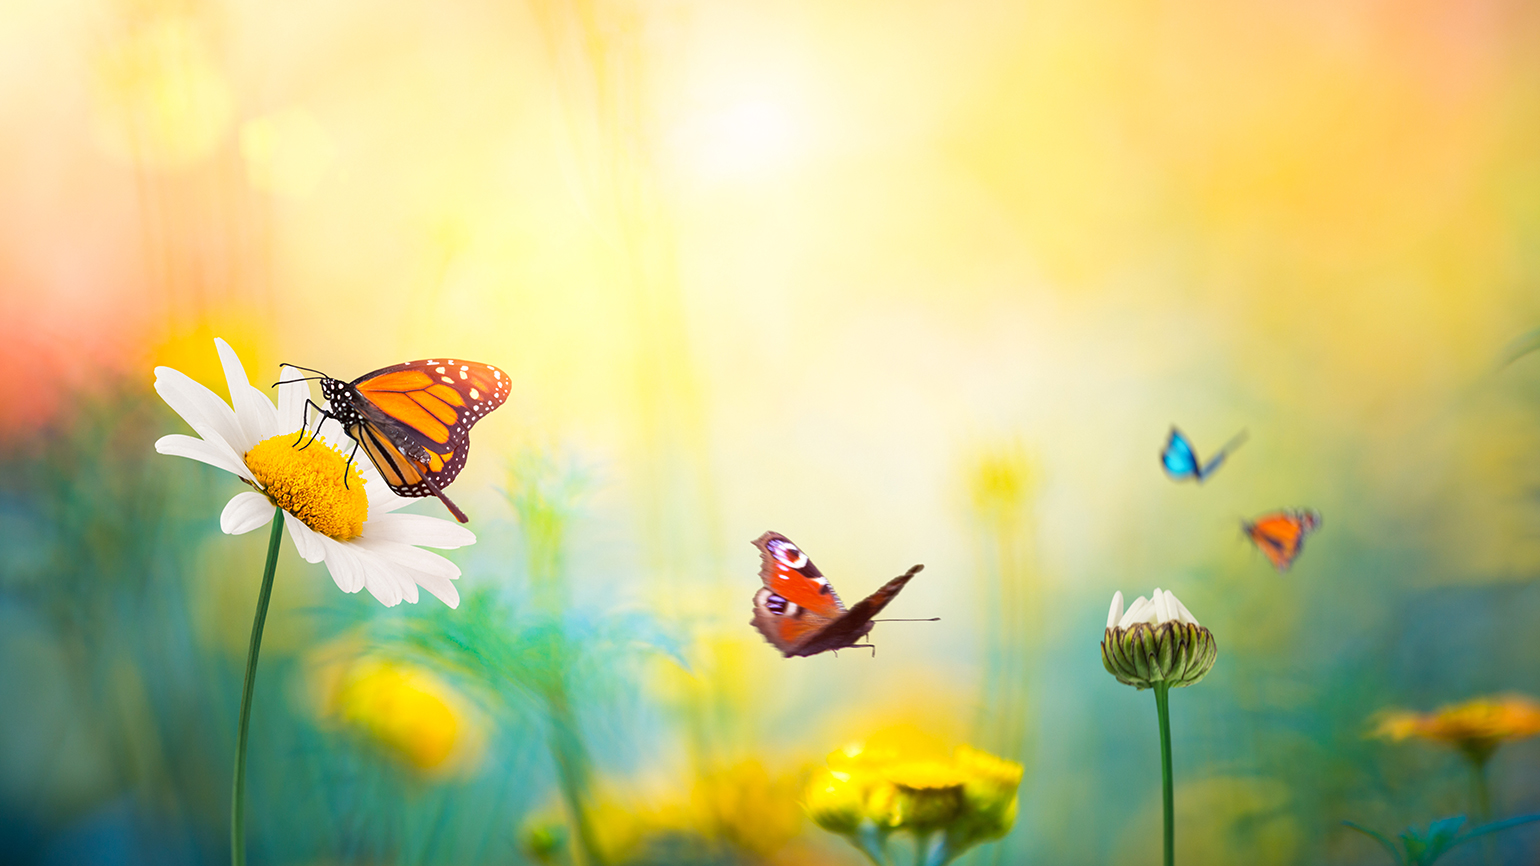 Butterflies flit from flower to spring flower in a sun-drenched meadow